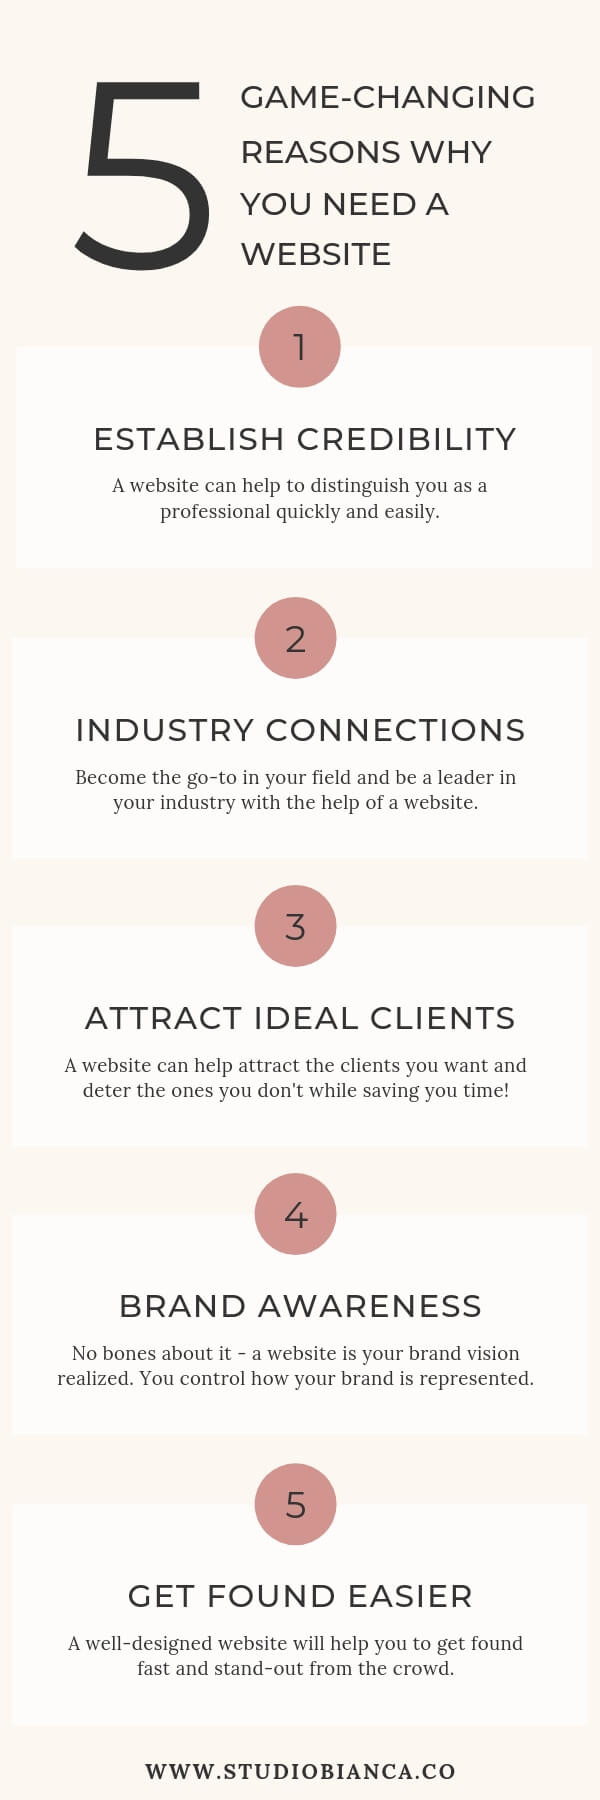 Creative entrepreneurs and small business owners, if you have Facebook, Instagram, or LinkedIn, do you still need a website? A website is an essential, profitable part of modern business. Learn why in this post!